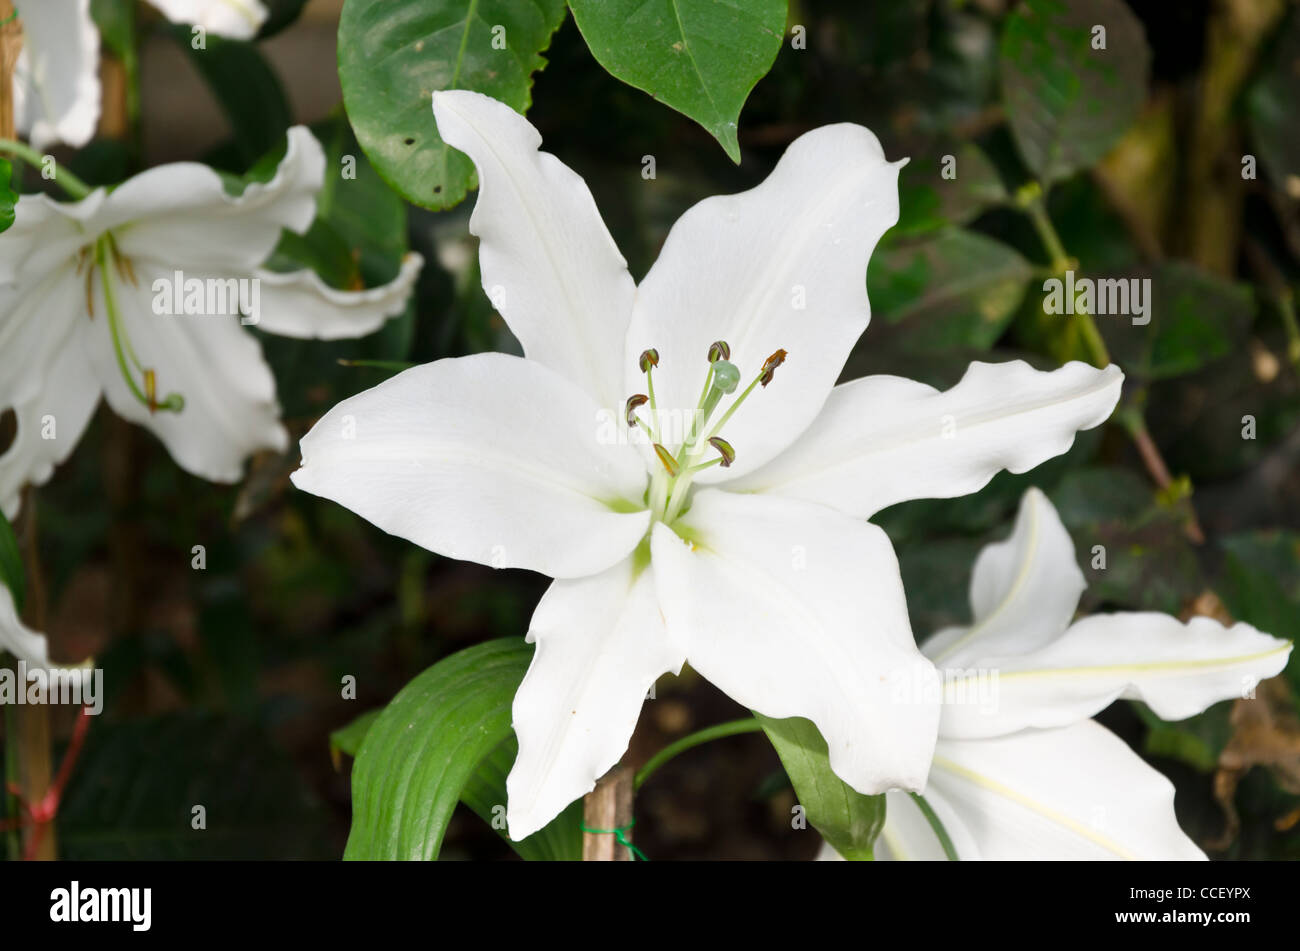 Tropical white flower thailand stock photos tropical white flower white six petal tropical flowers in garden in northern thailand stock image mightylinksfo